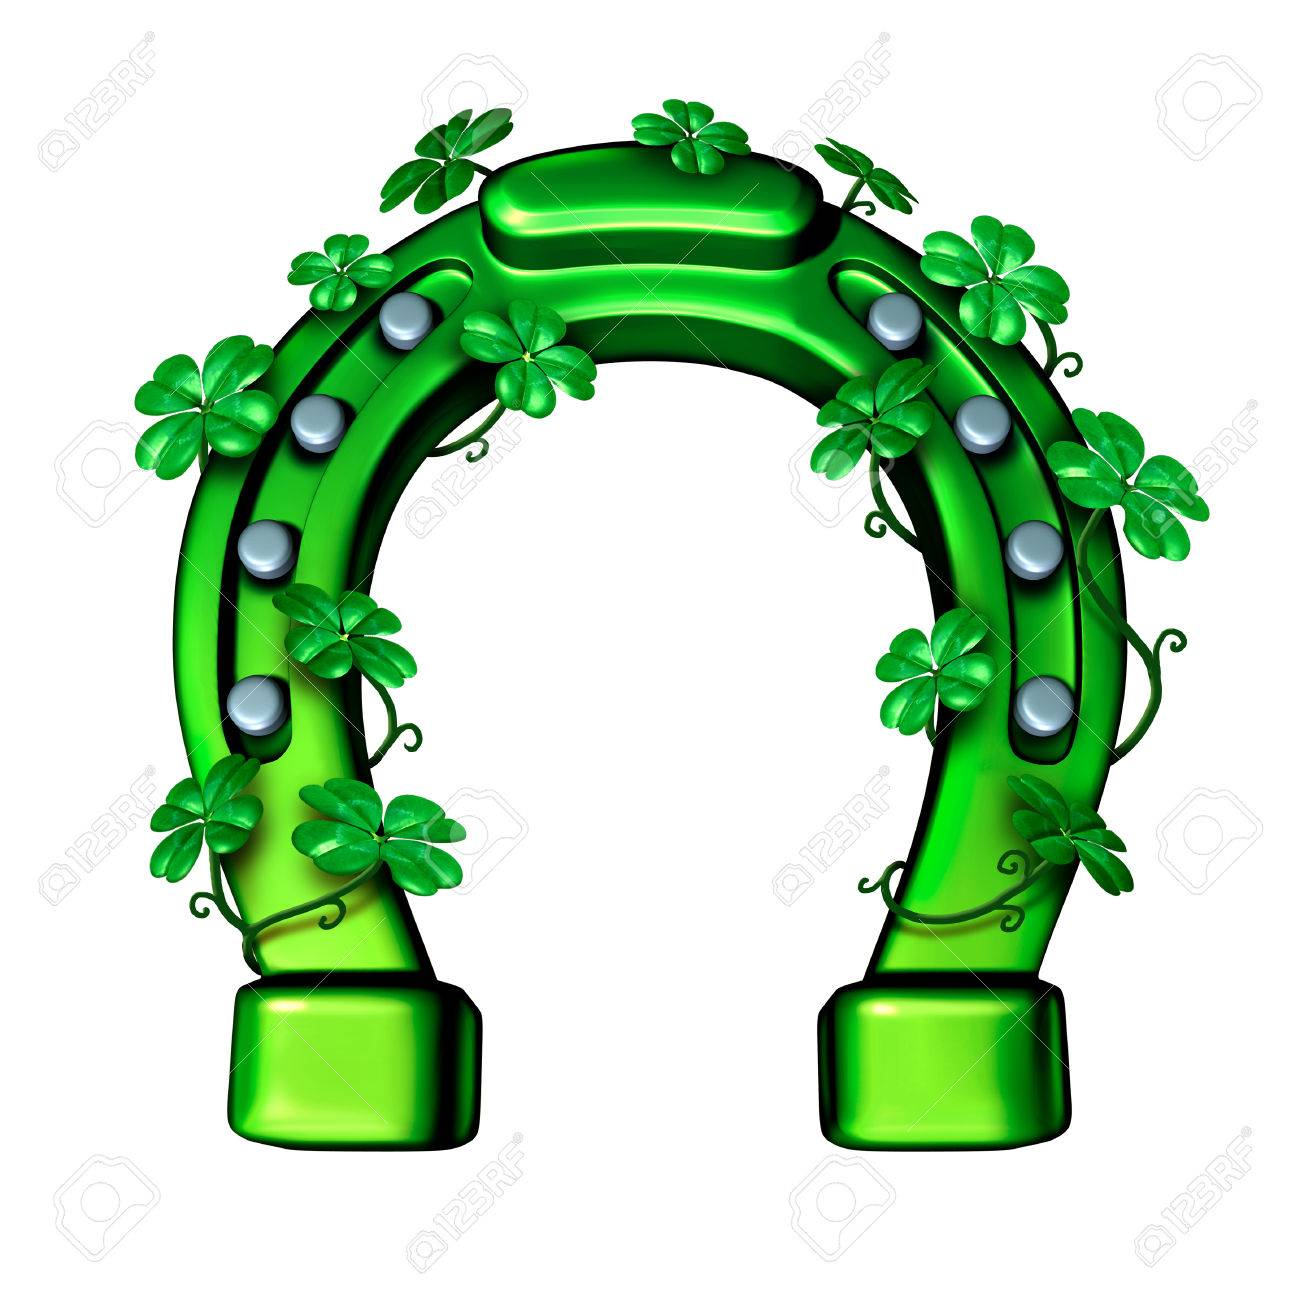 Green horseshoe as a lucky fortune symbol for saint patricks stock green horseshoe as a lucky fortune symbol for saint patricks day or luck of the irish buycottarizona Gallery